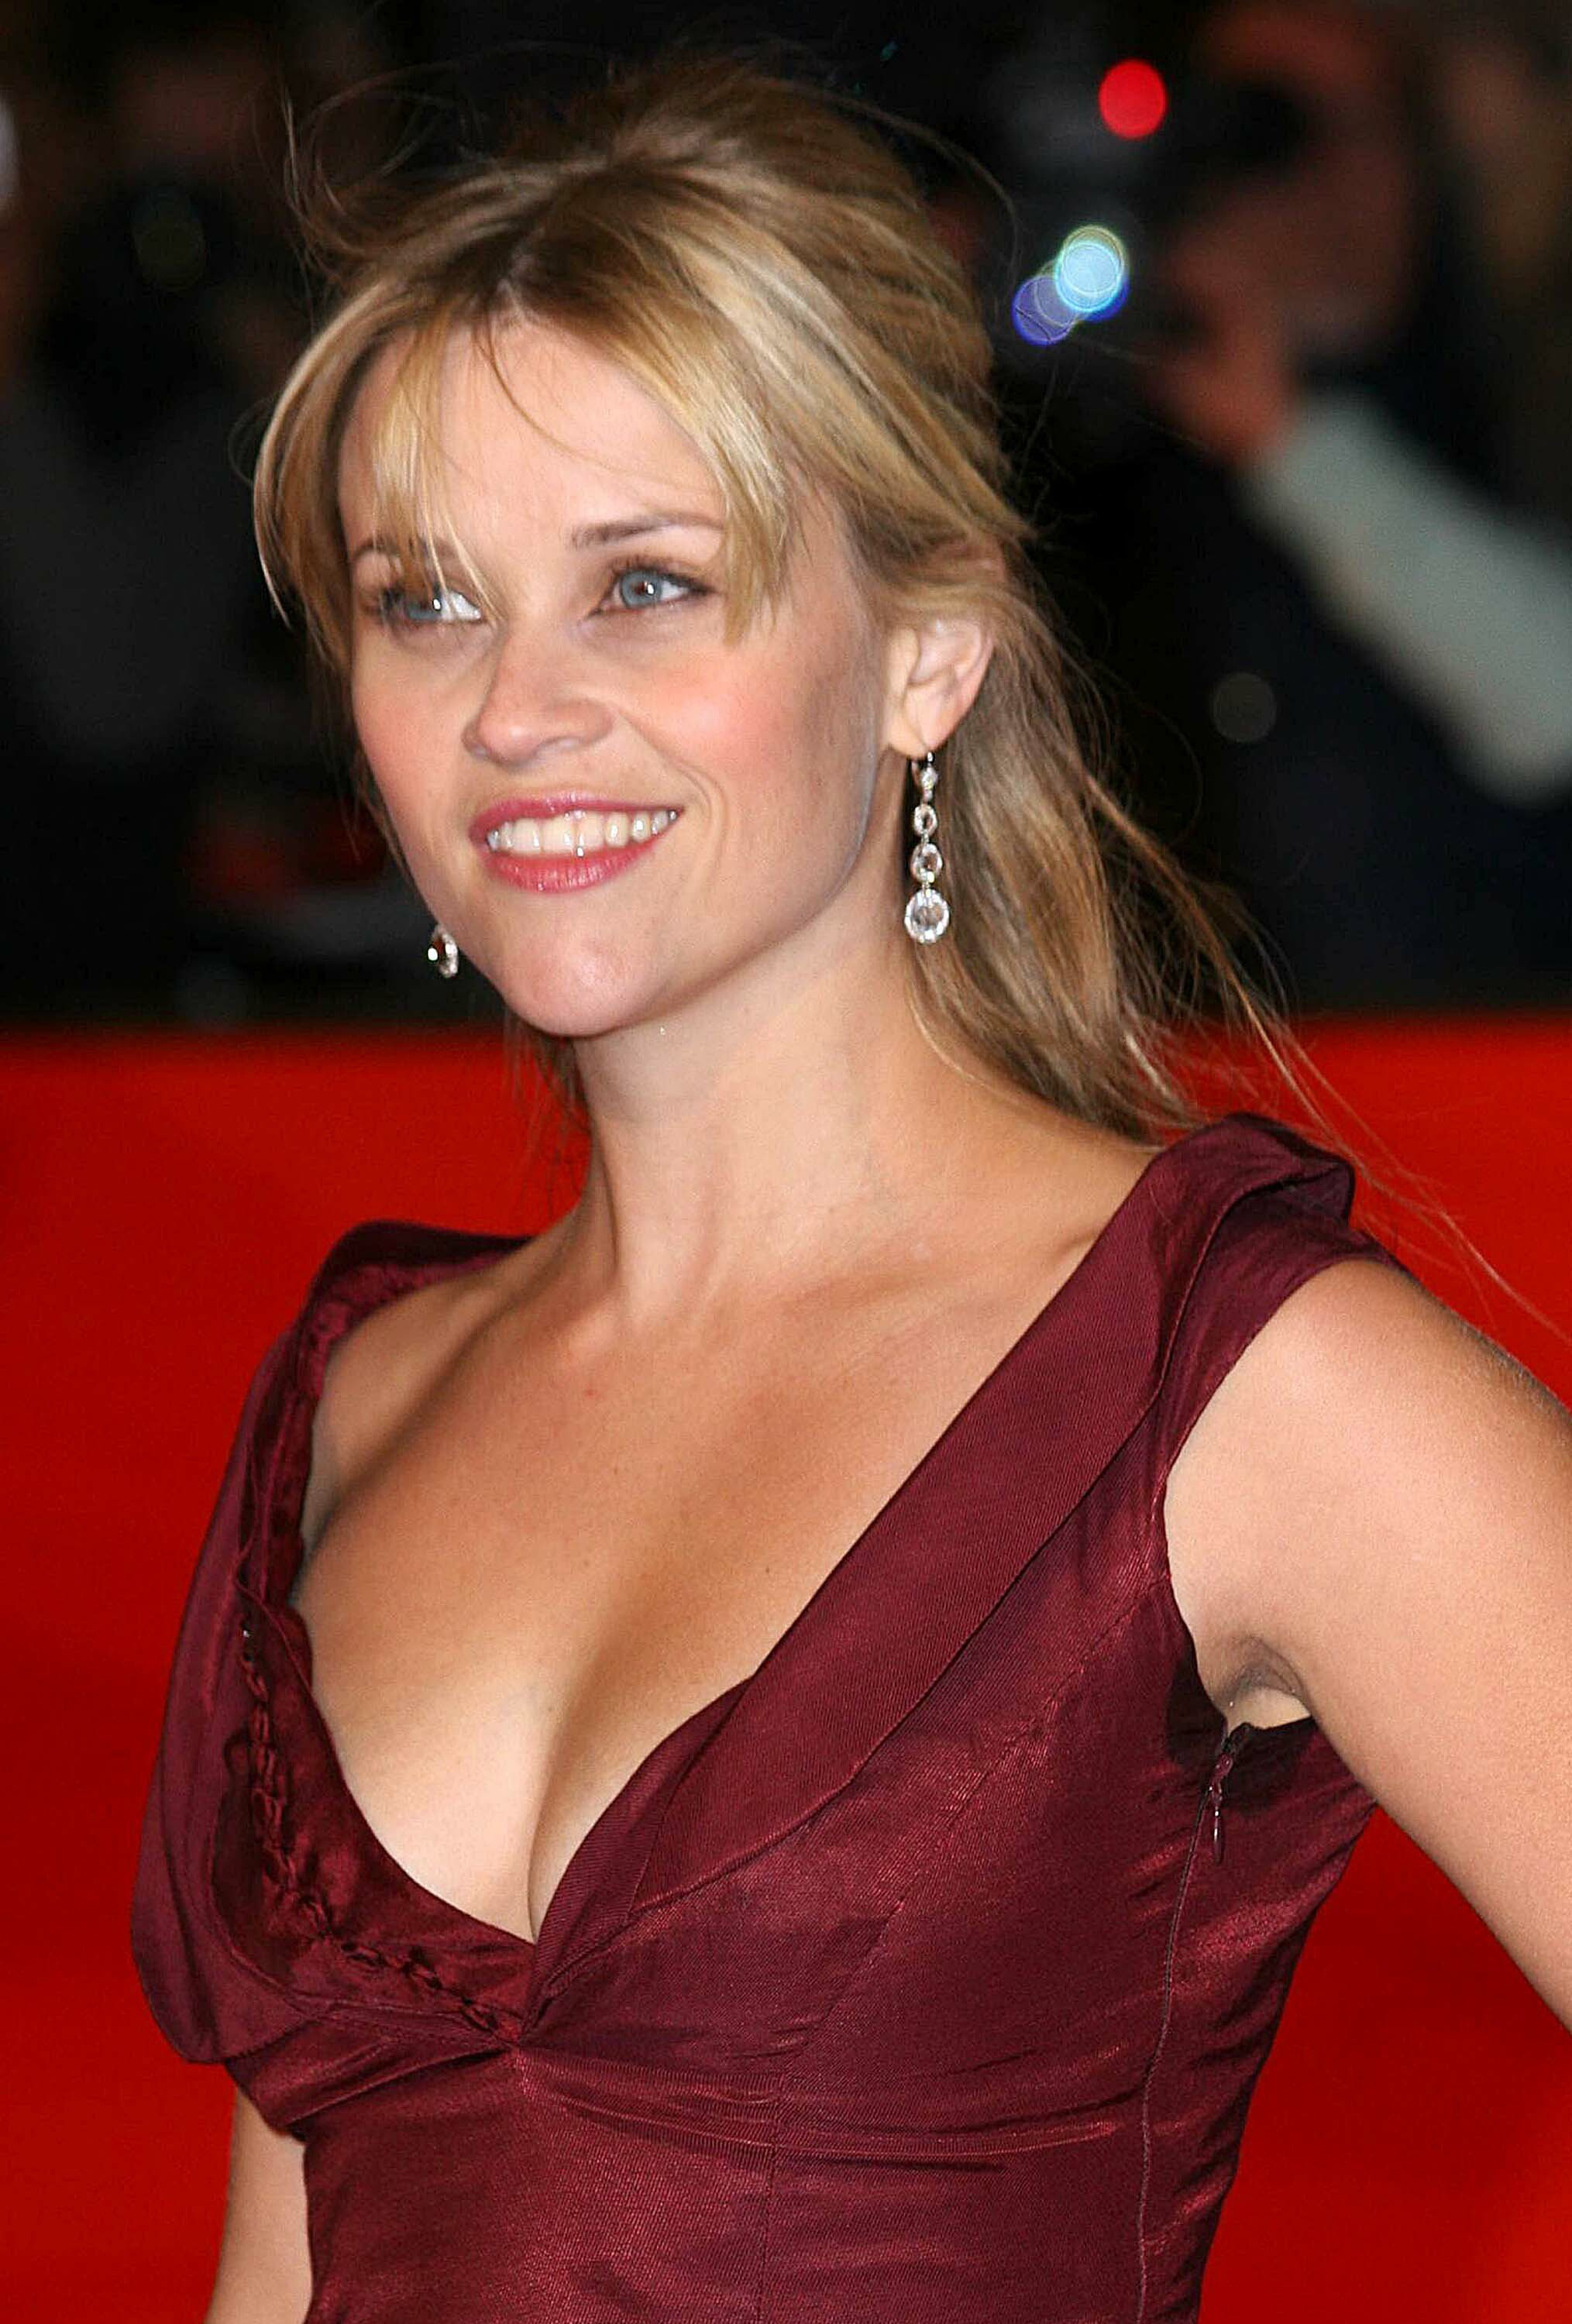 reese witherspoon hot cleavage